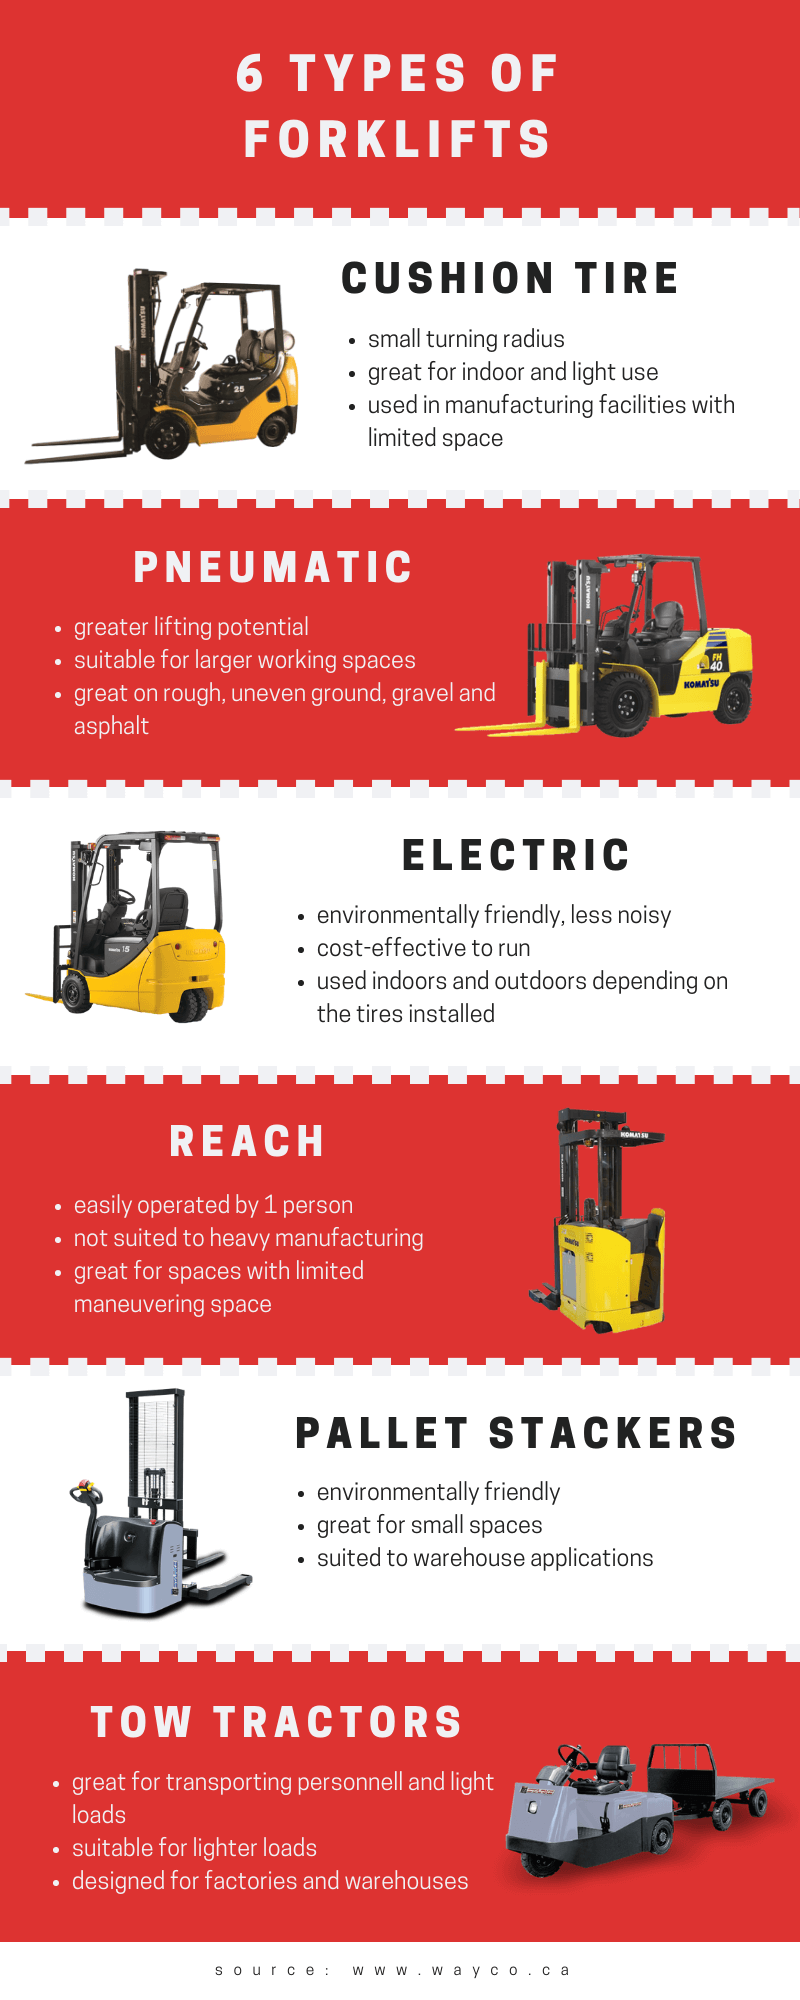 6-Types-of-forklifts.png